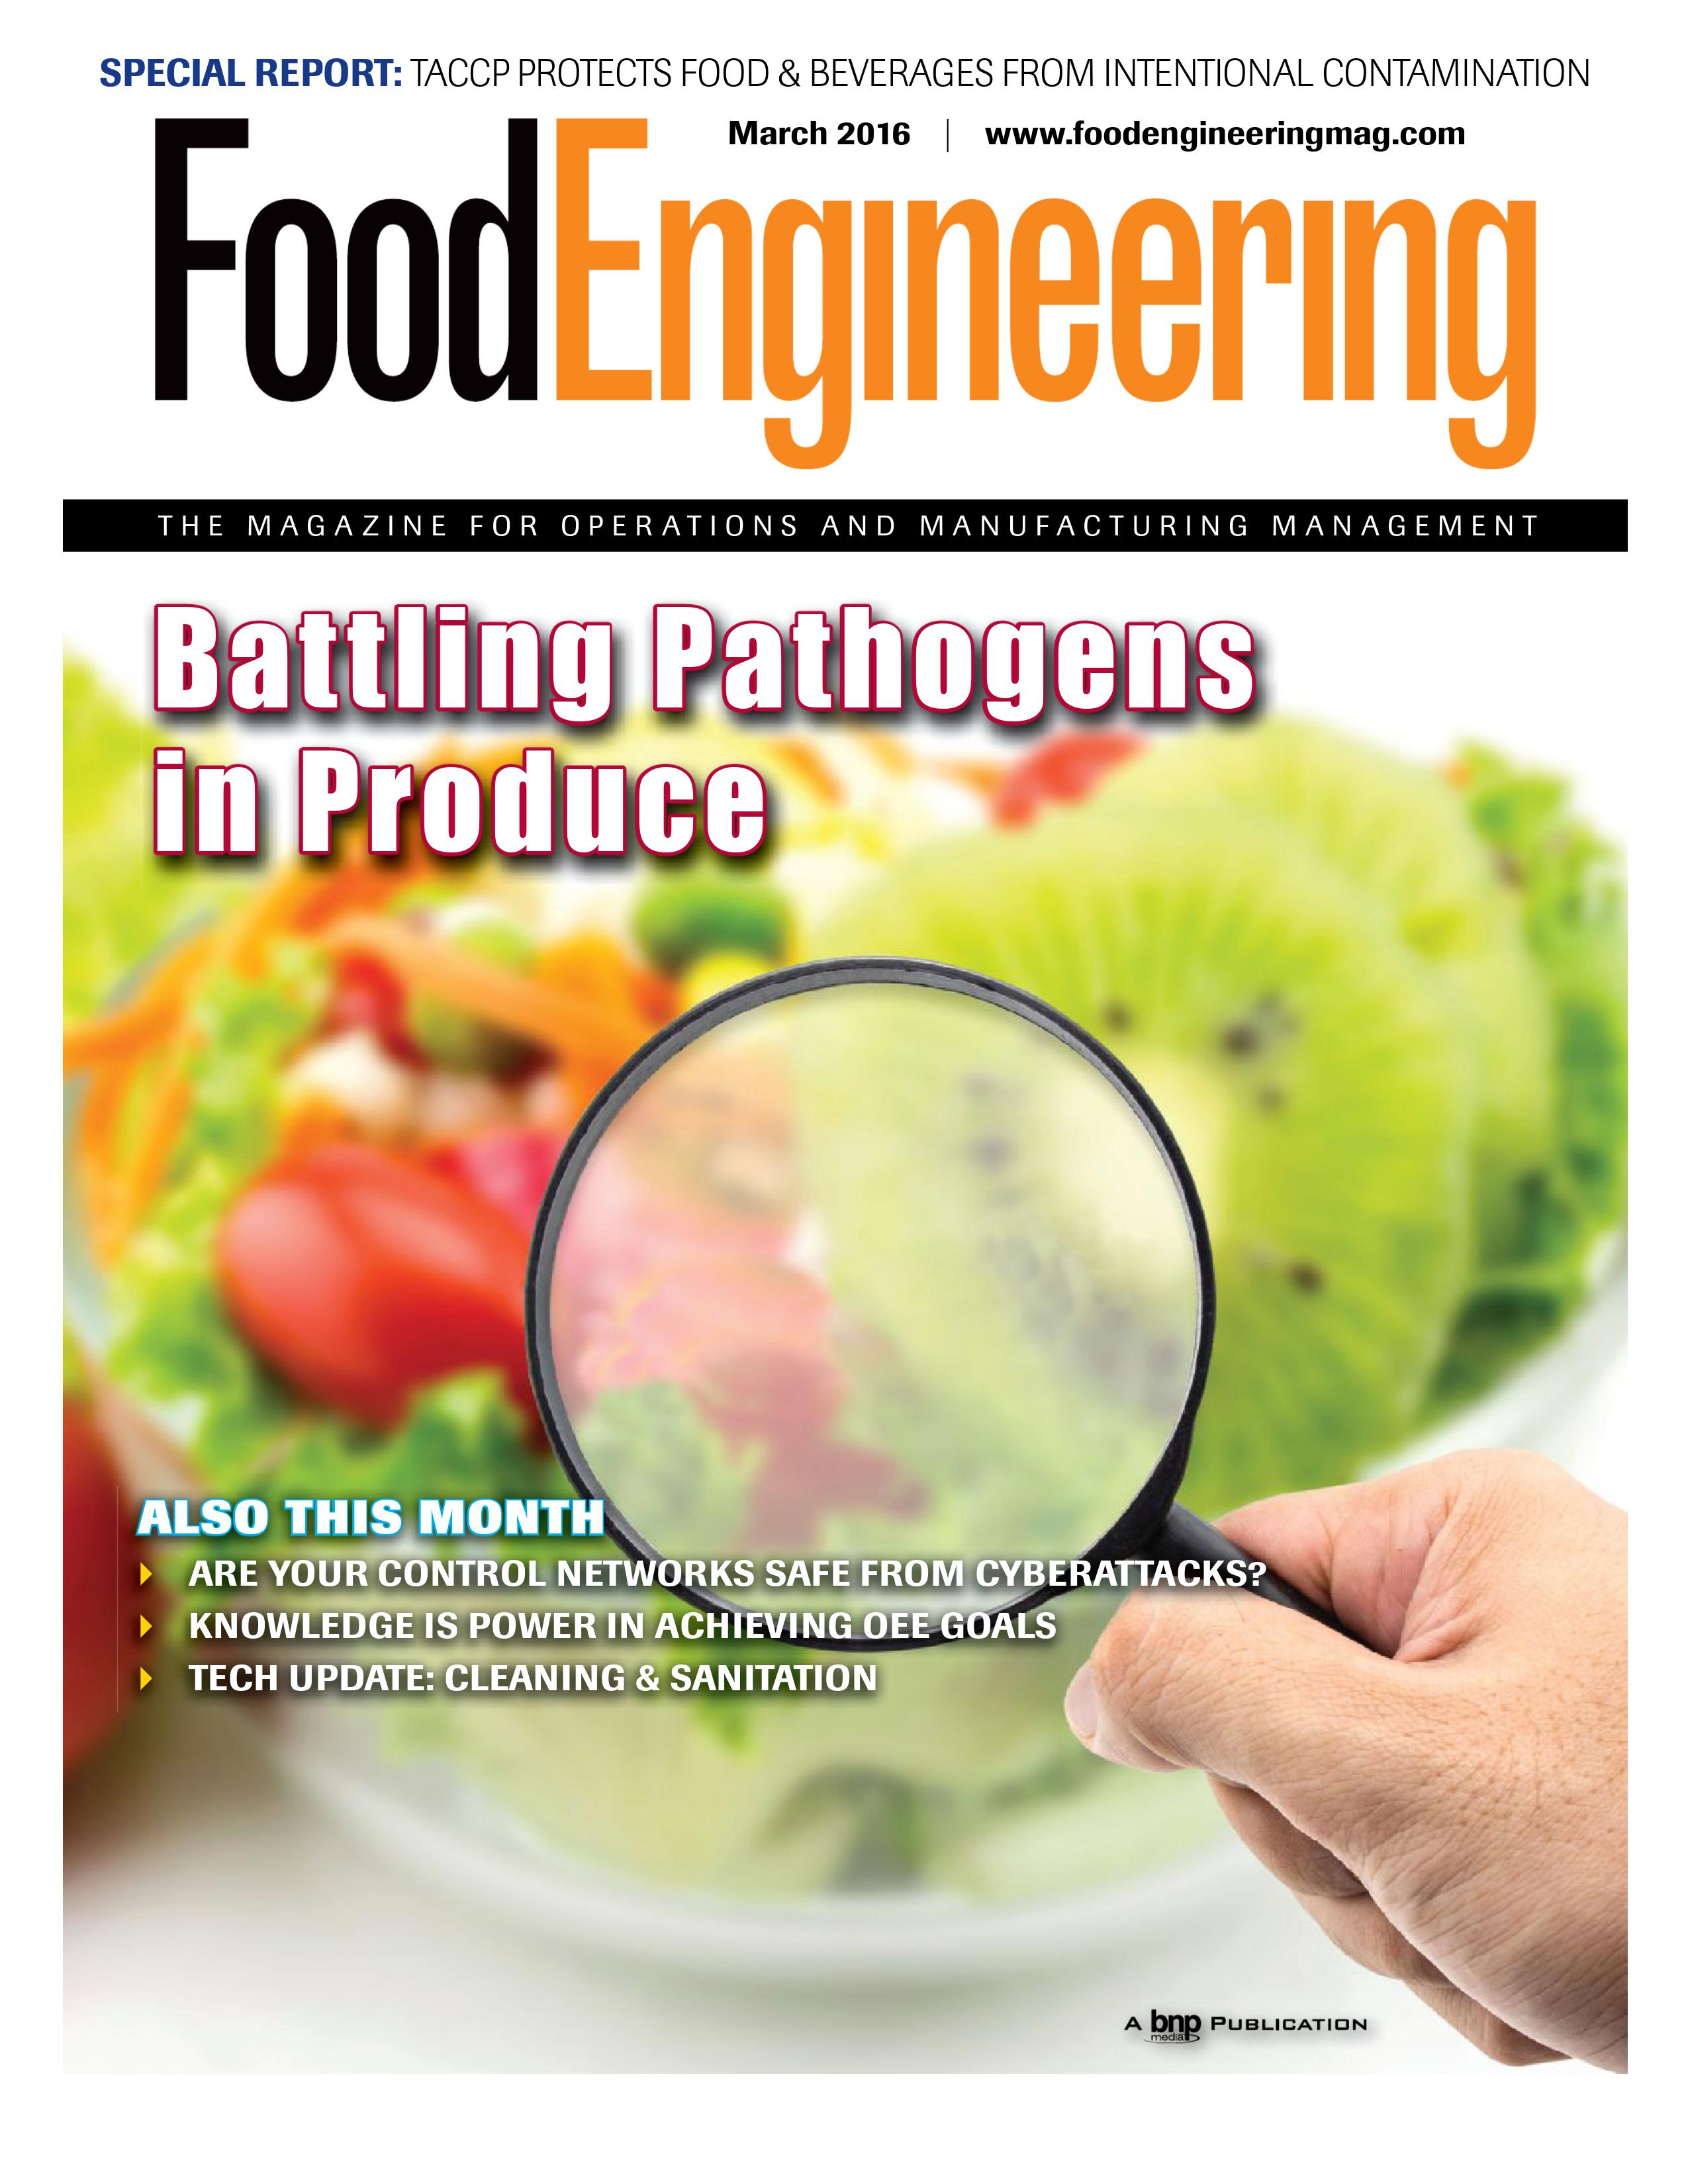 Food Engineering Benchmark study